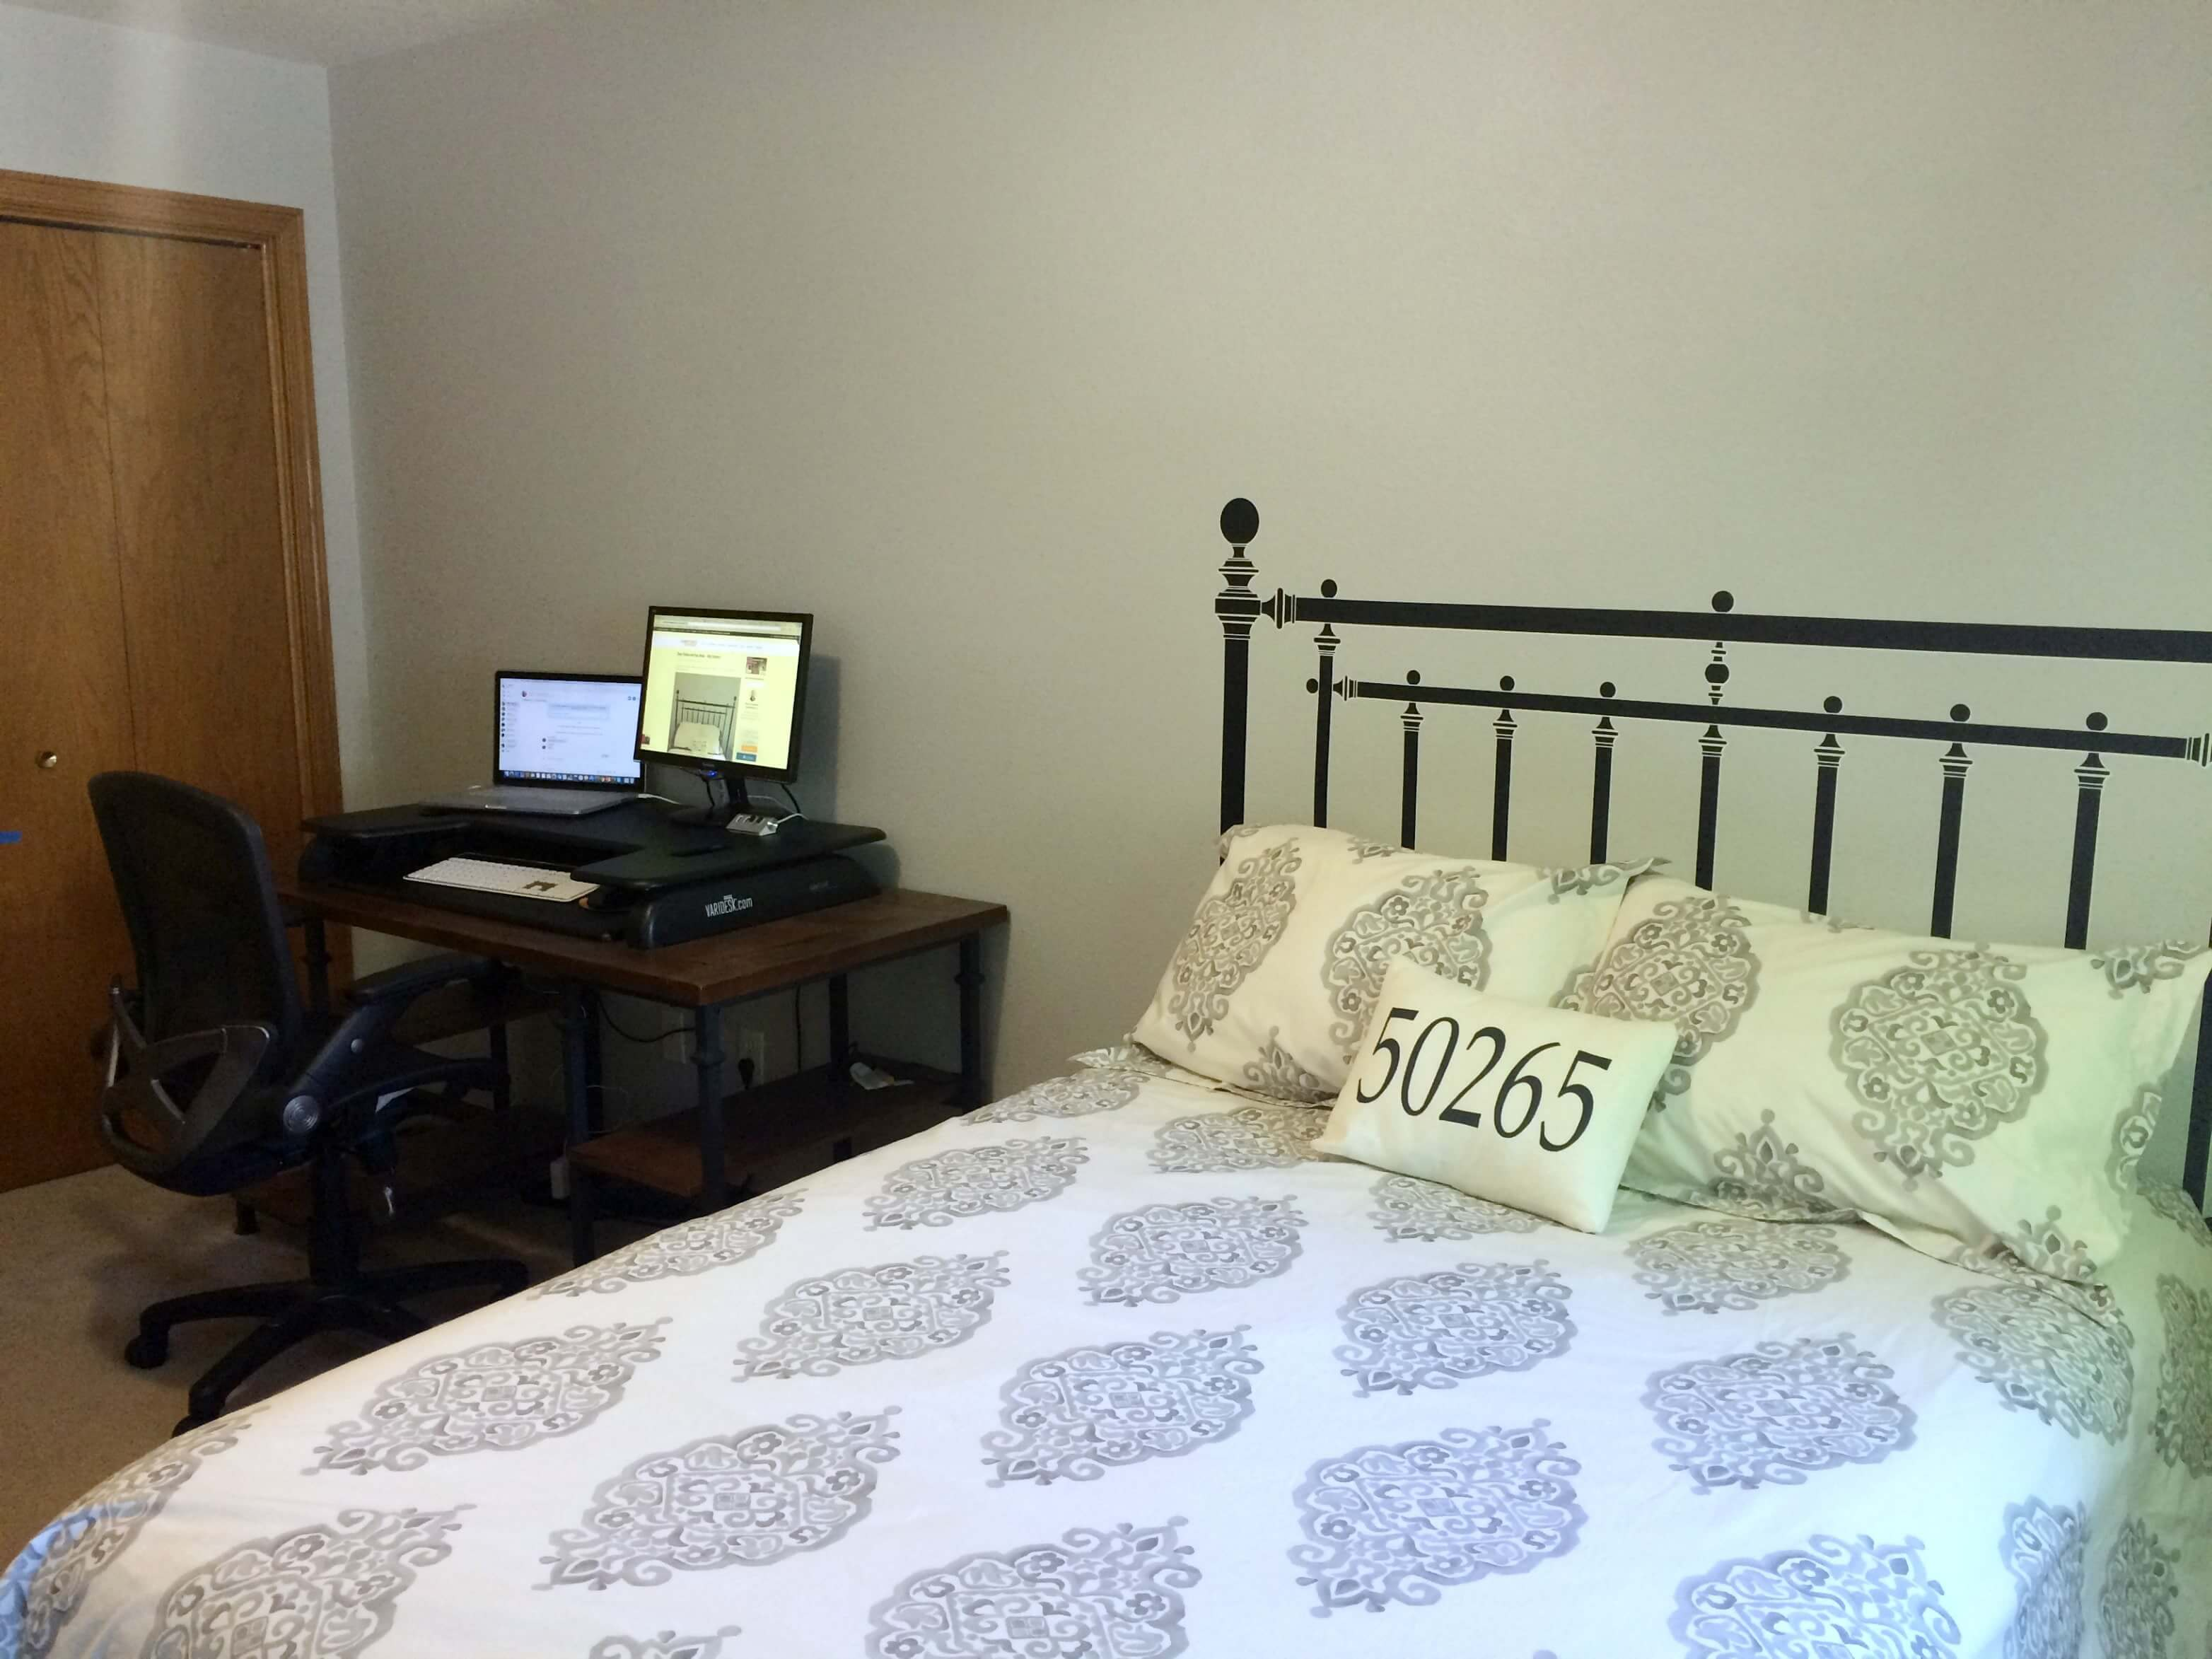 Faux Iron Headboard - Spare bedroom and office makeover